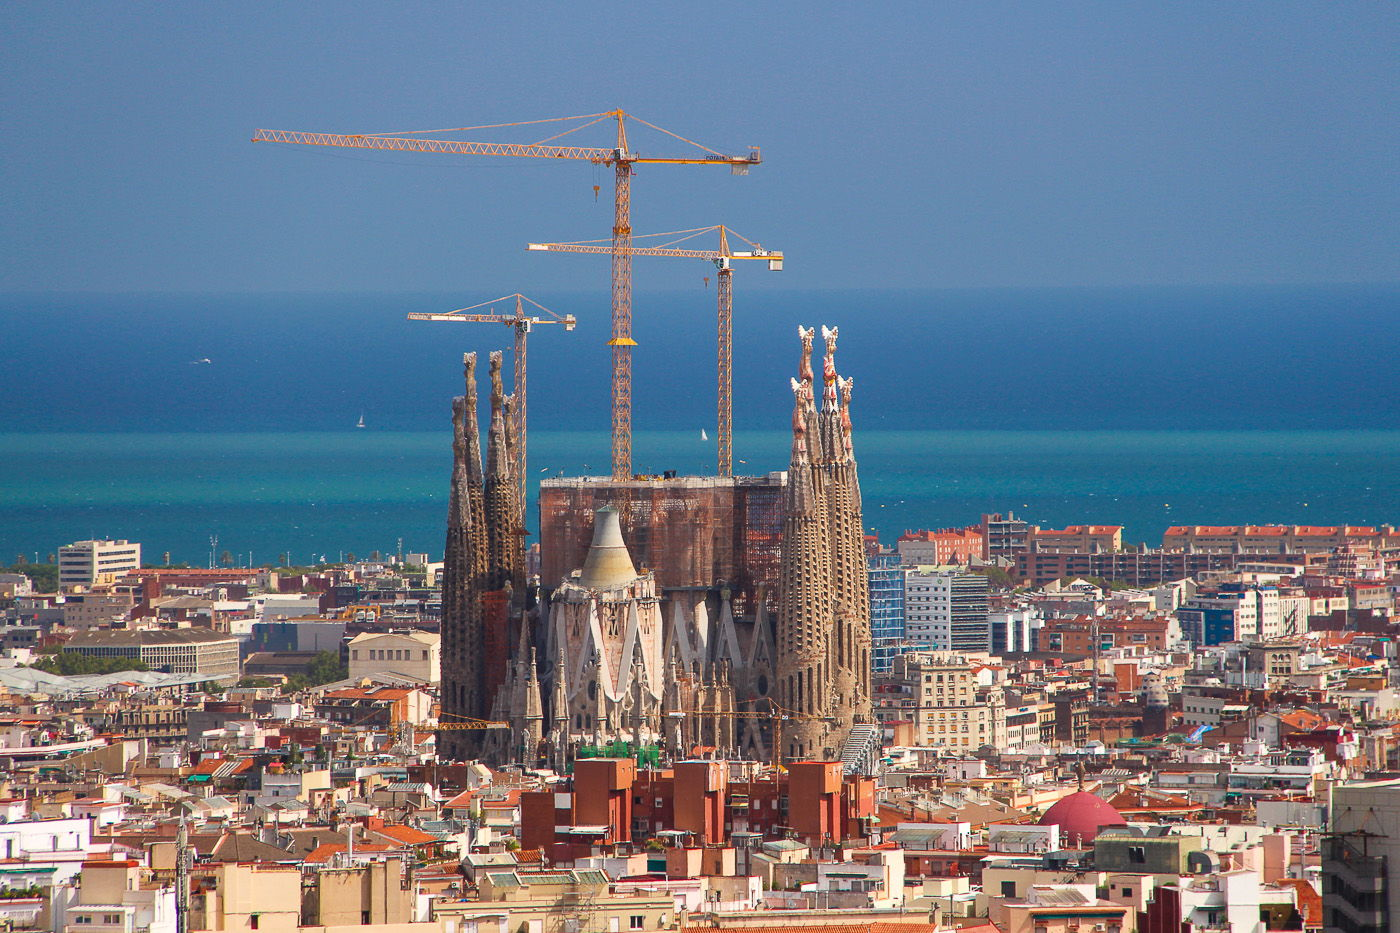 Centuries in the making - La Sagrada Familia